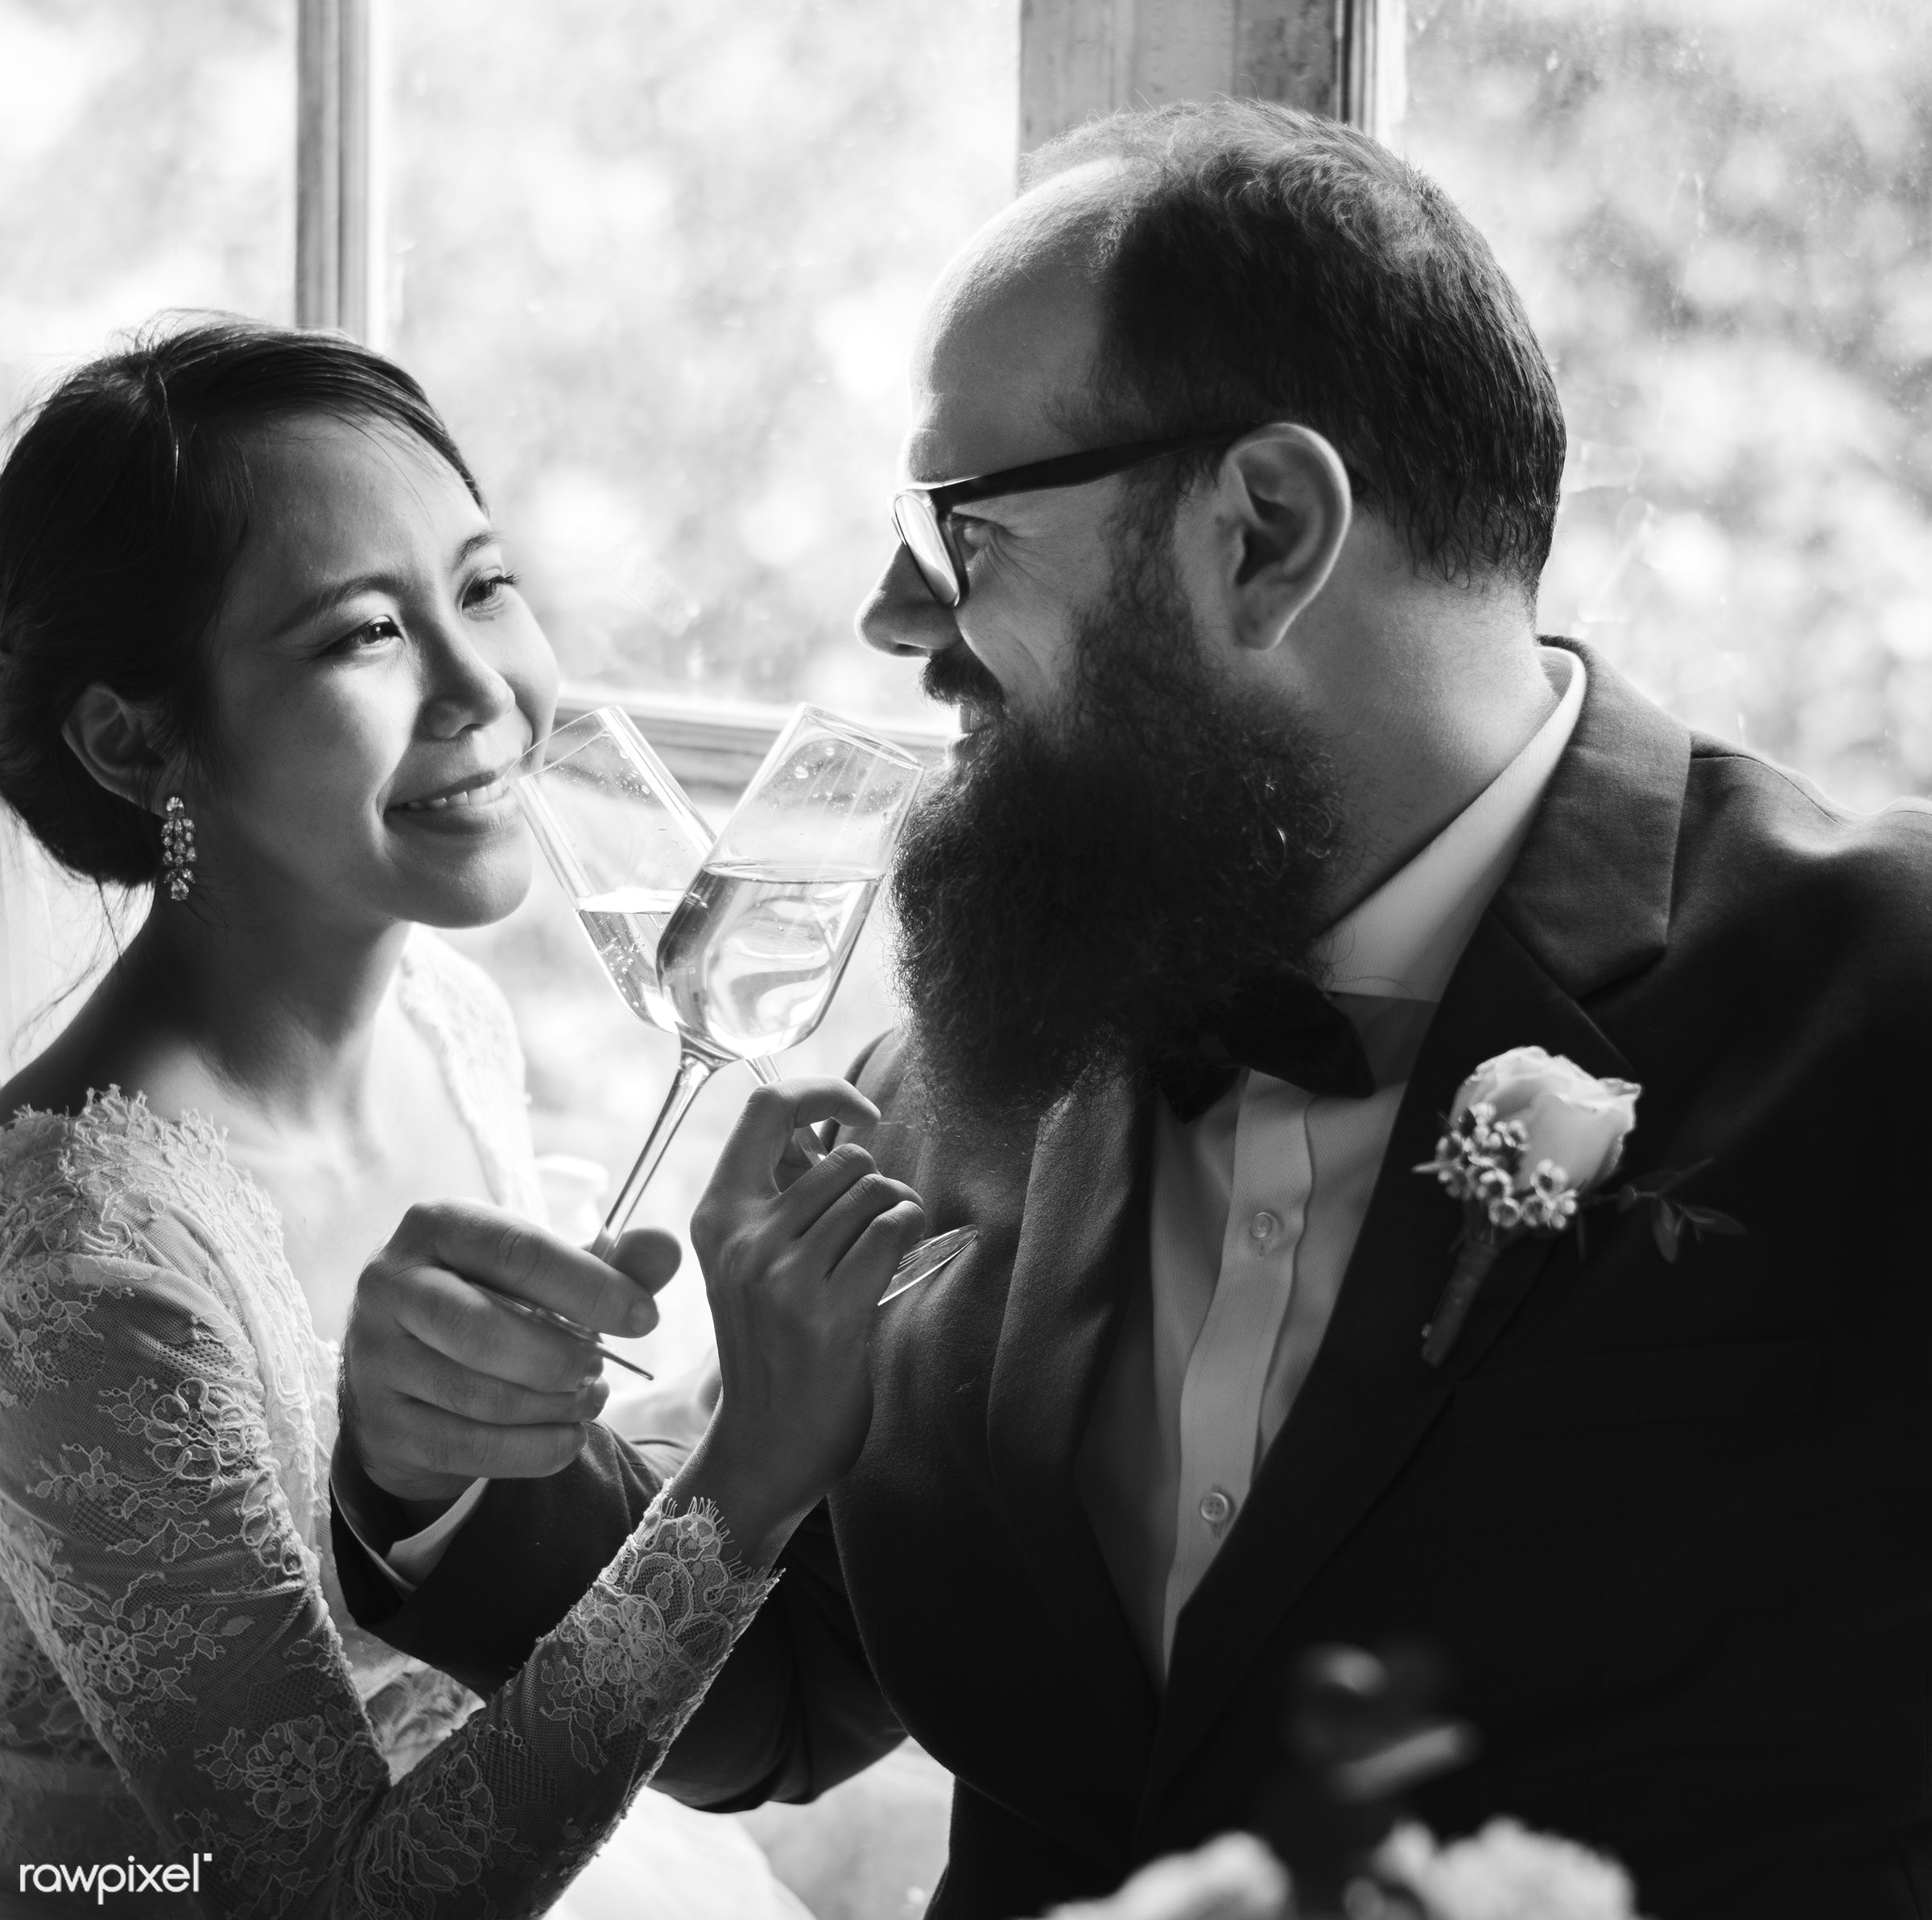 glasses, drinking, occasion, winde, together, caucasian, asian, love, married, hands, couple, bride, cheerful, smiling,...